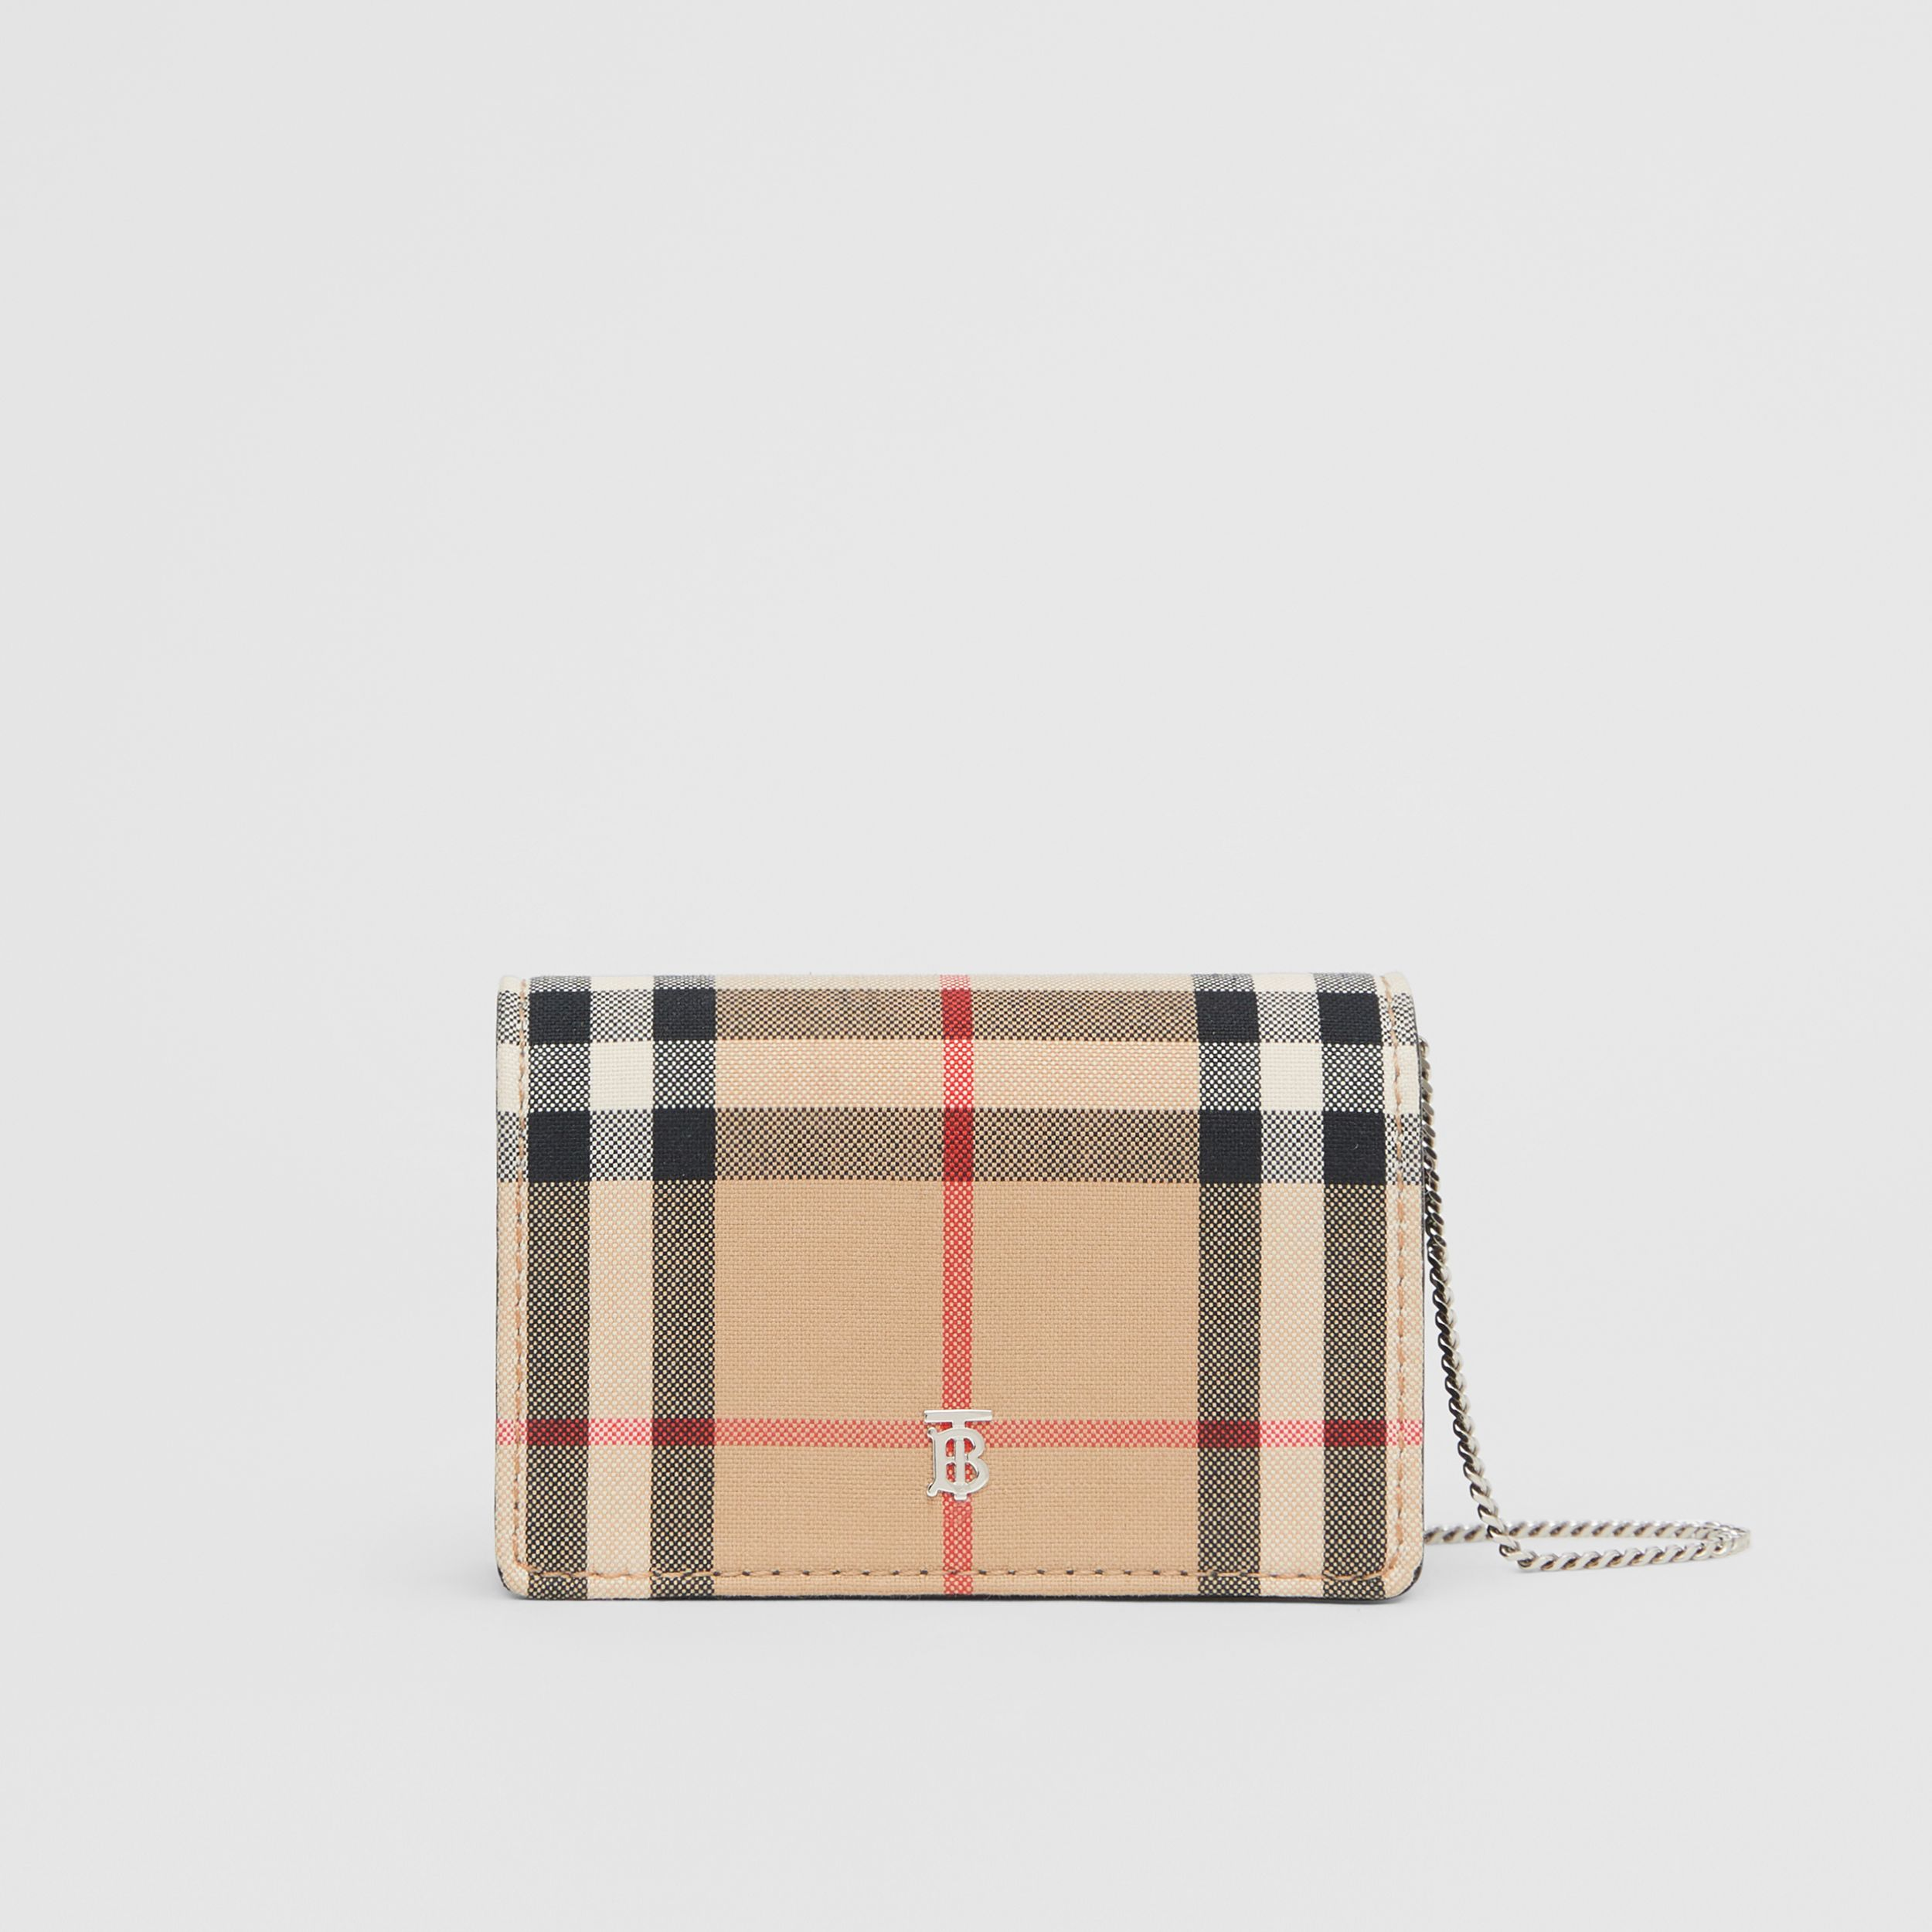 Vintage Check Card Case with Detachable Strap in Black - Women | Burberry Hong Kong S.A.R. - 1